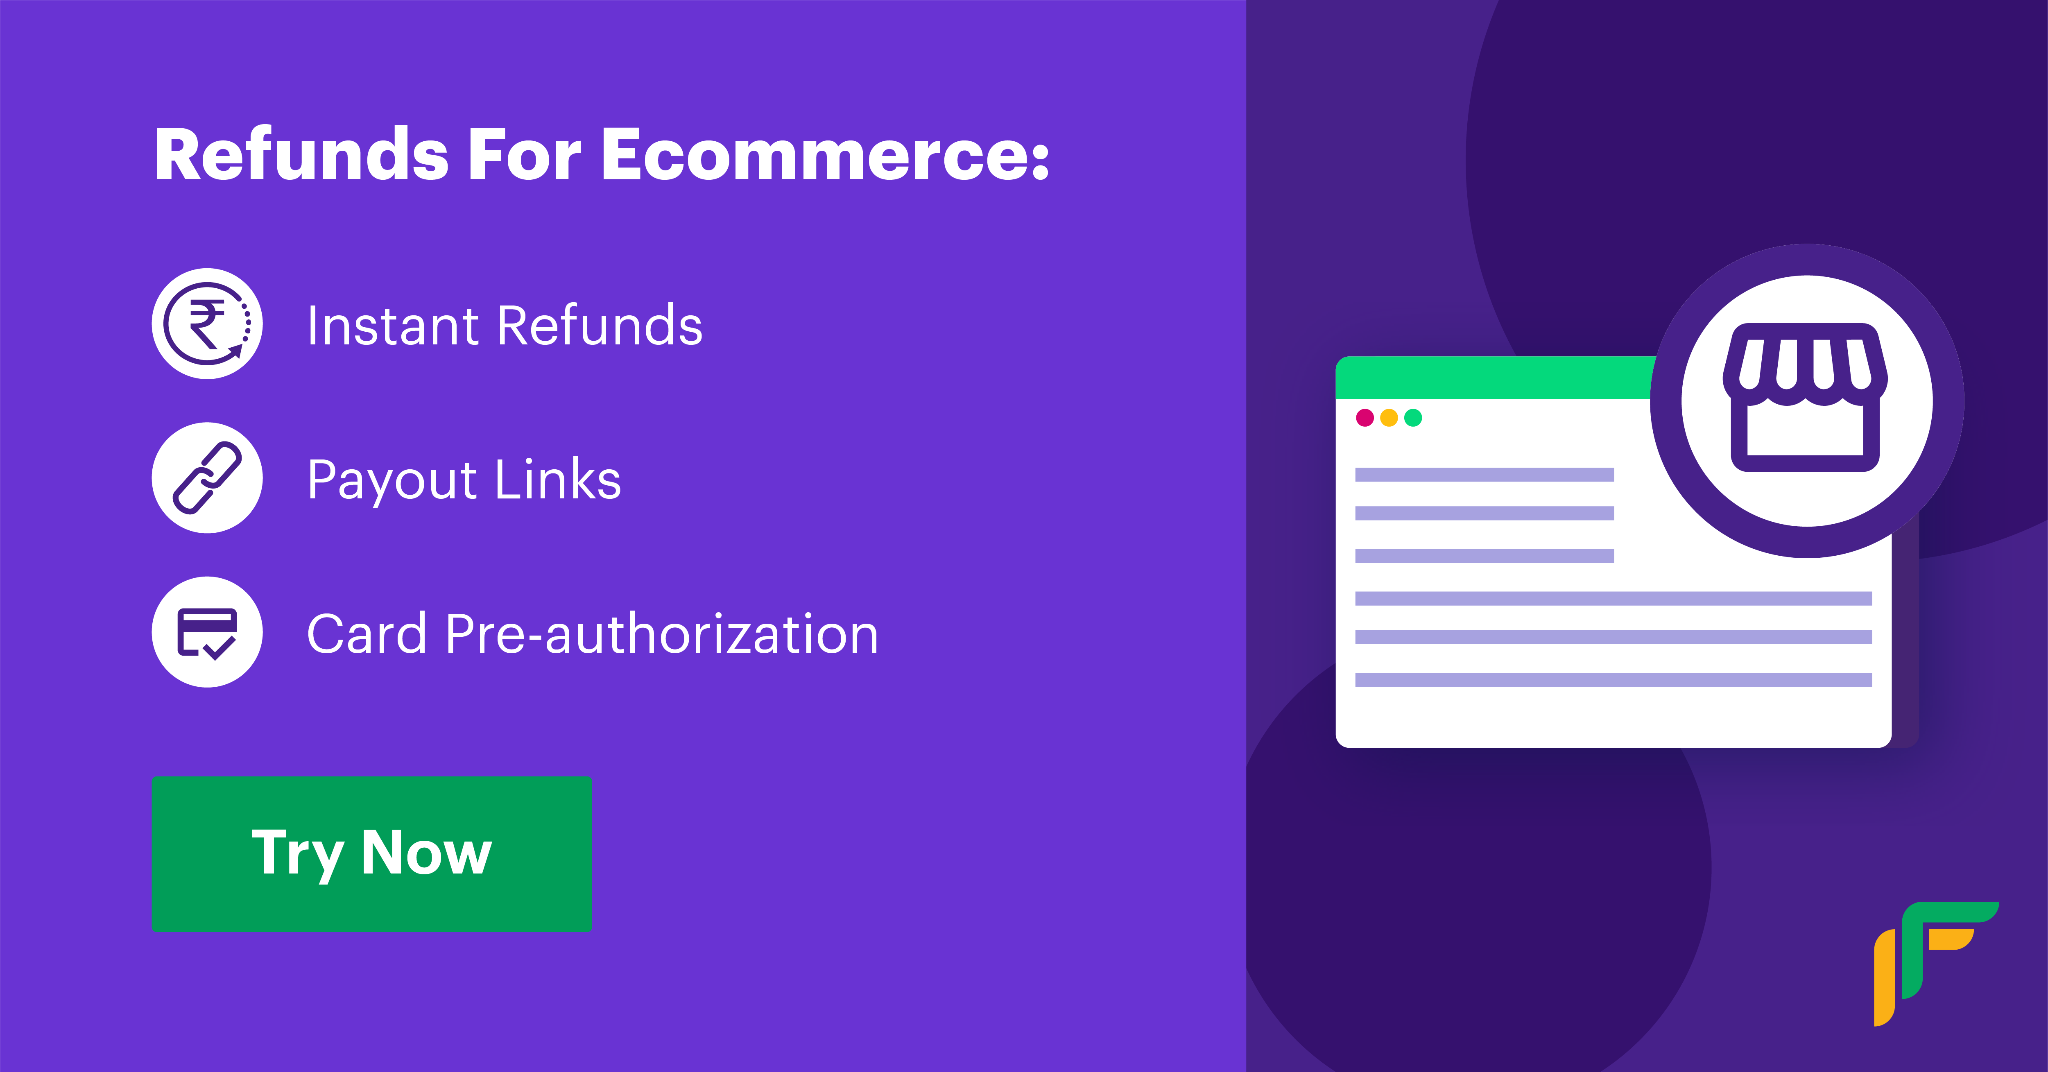 payments systems for eCommerce: instant refunds